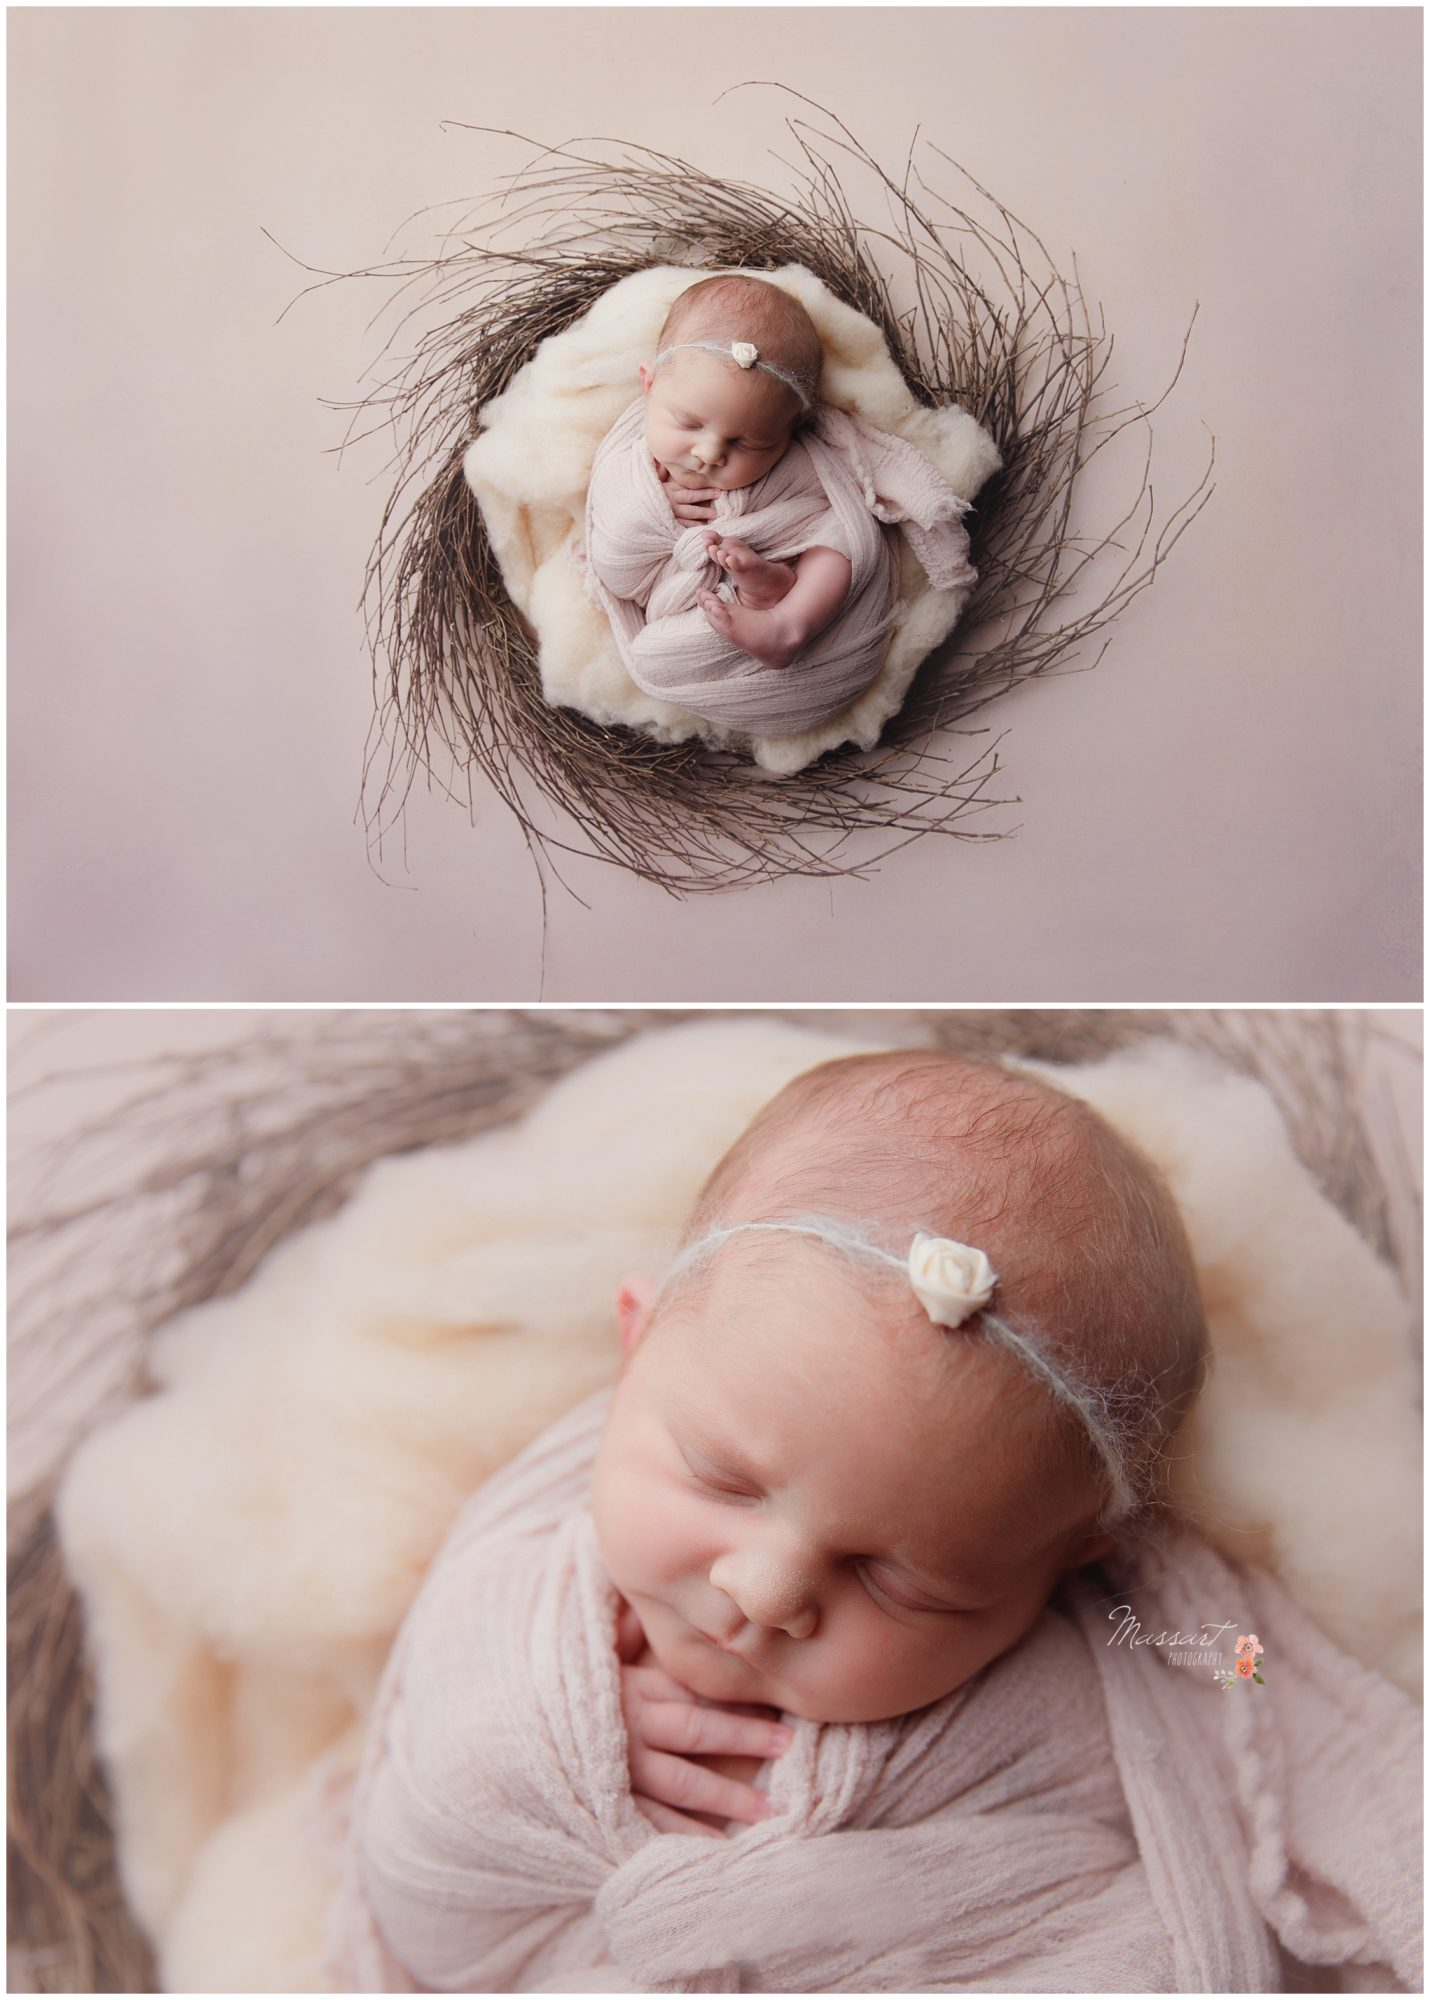 Baby lays in wreath of twigs with wrapped in pink photographed by Massart Photography RI